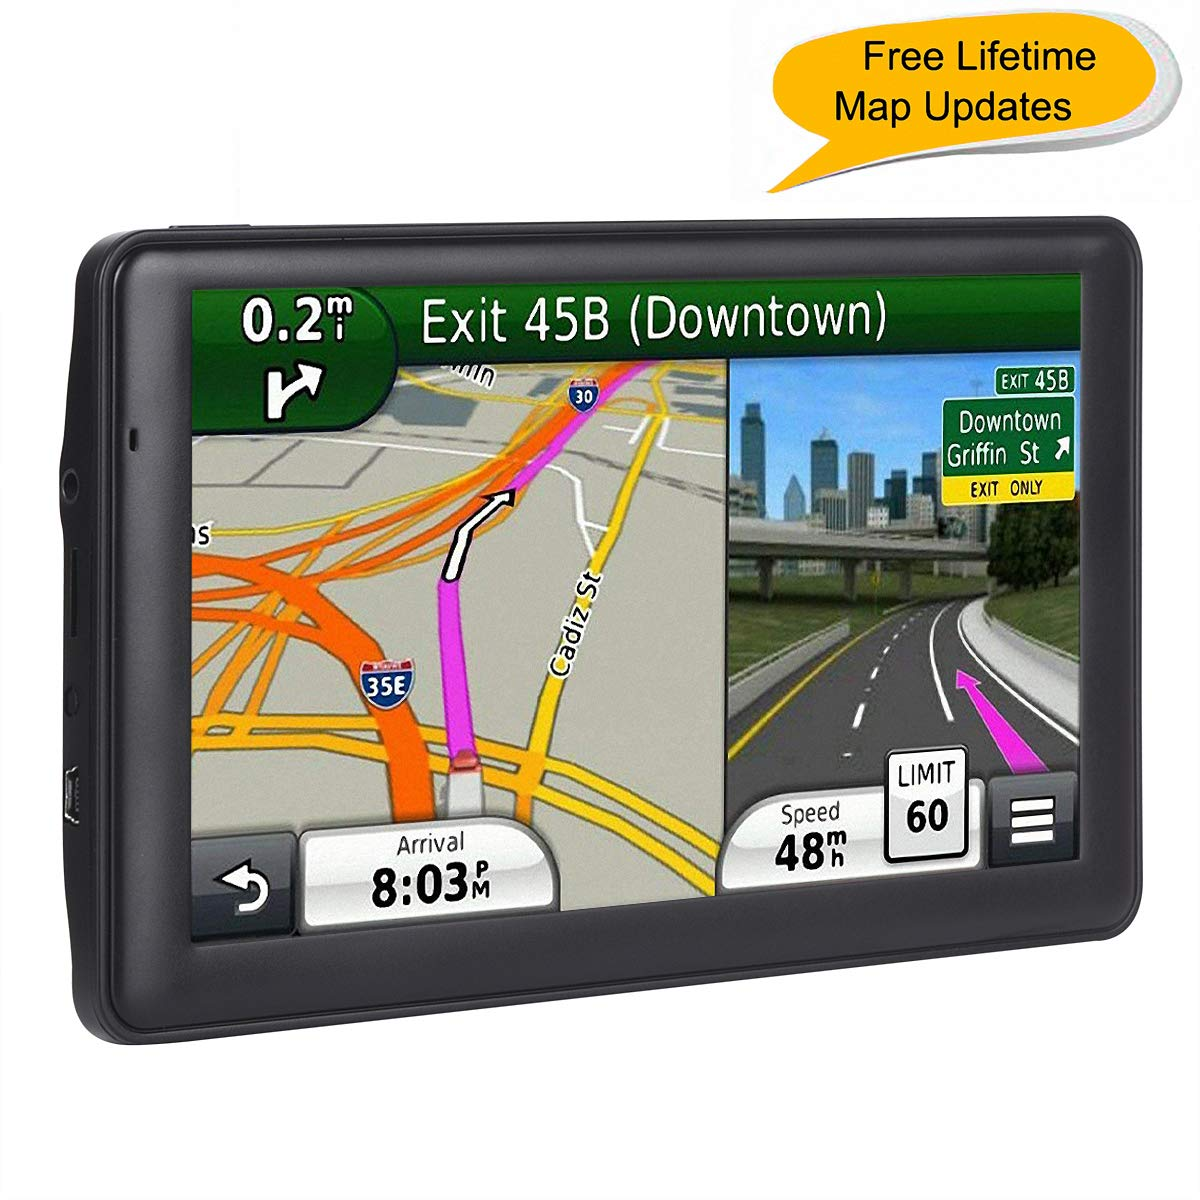 Car GPS, 7-inch Portable Navigation System for Cars, Lifetime Map Updates, Real Voice Turn-to-Turn Alert Vehicle GPS Sat-Nav